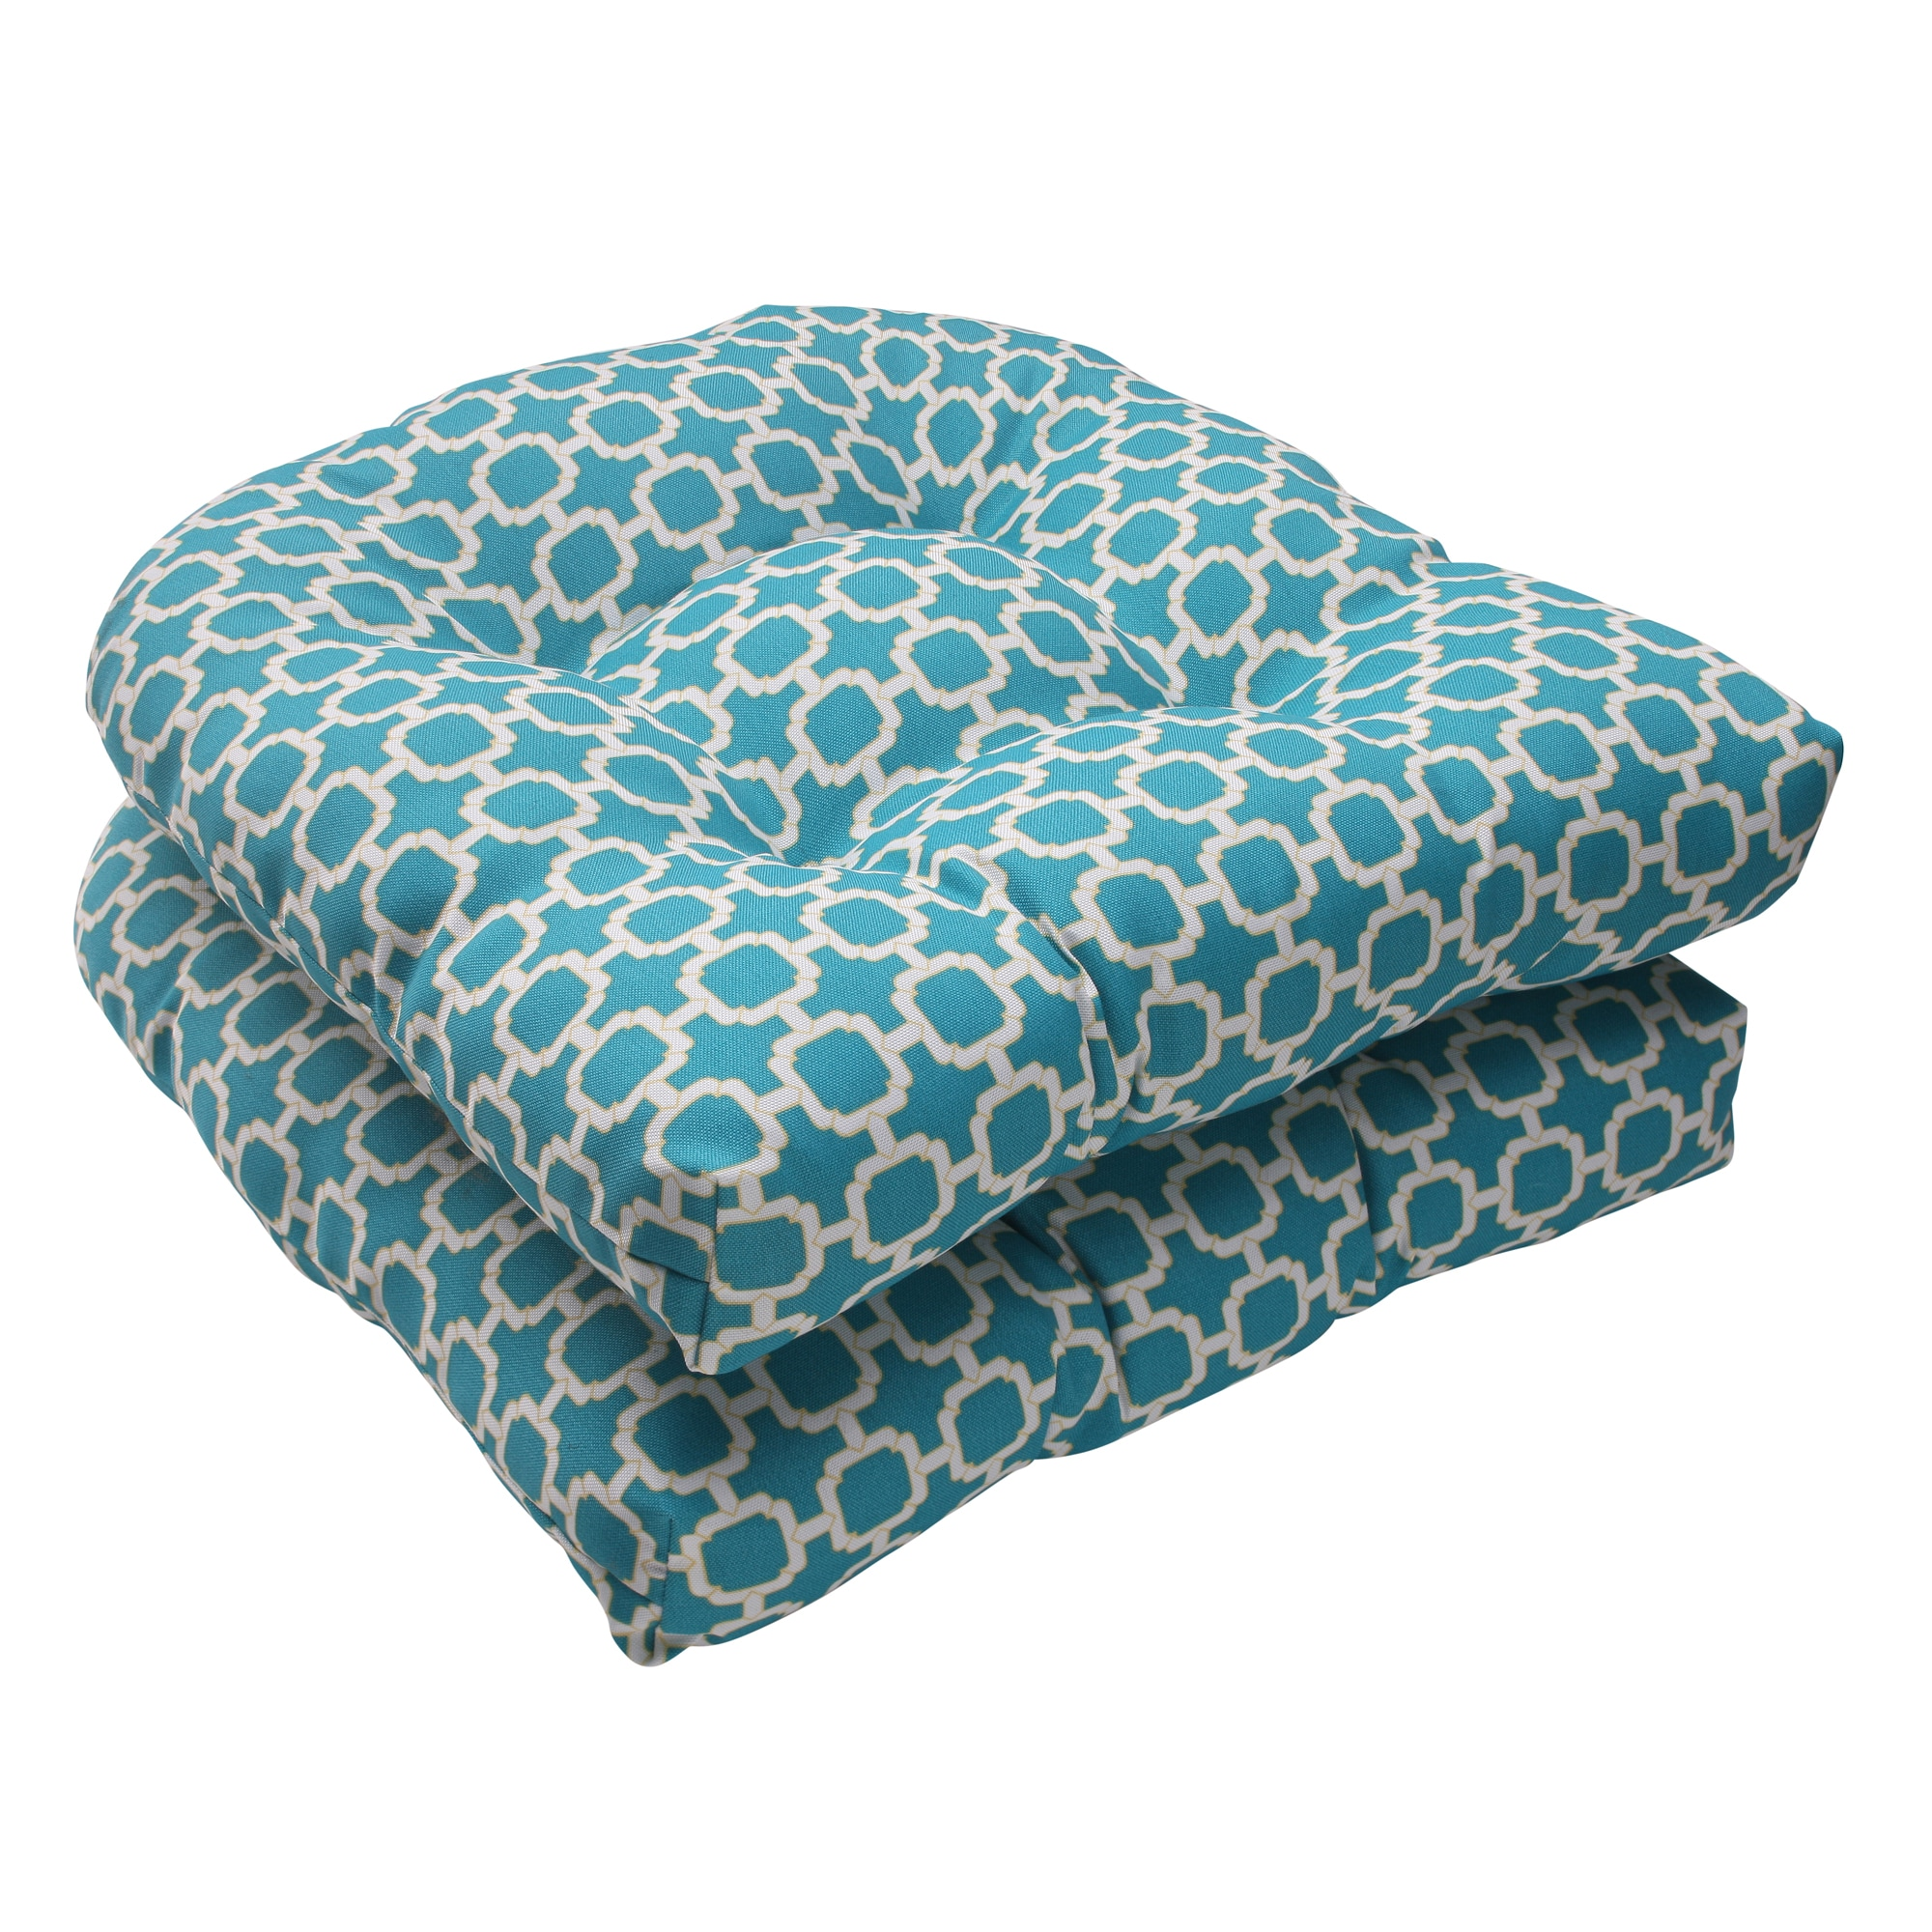 Pillow Perfect Outdoor Hockley Wicker Teal Seat Cushions